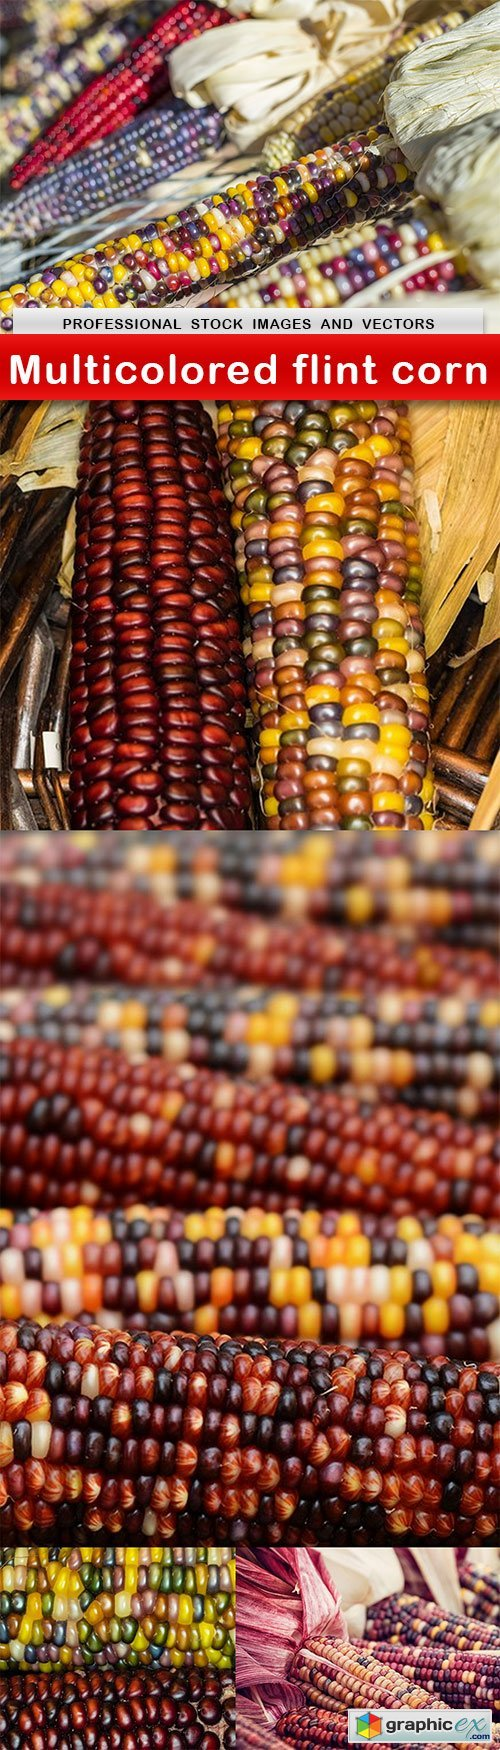 Multicolored flint corn - 5 UHQ JPEG